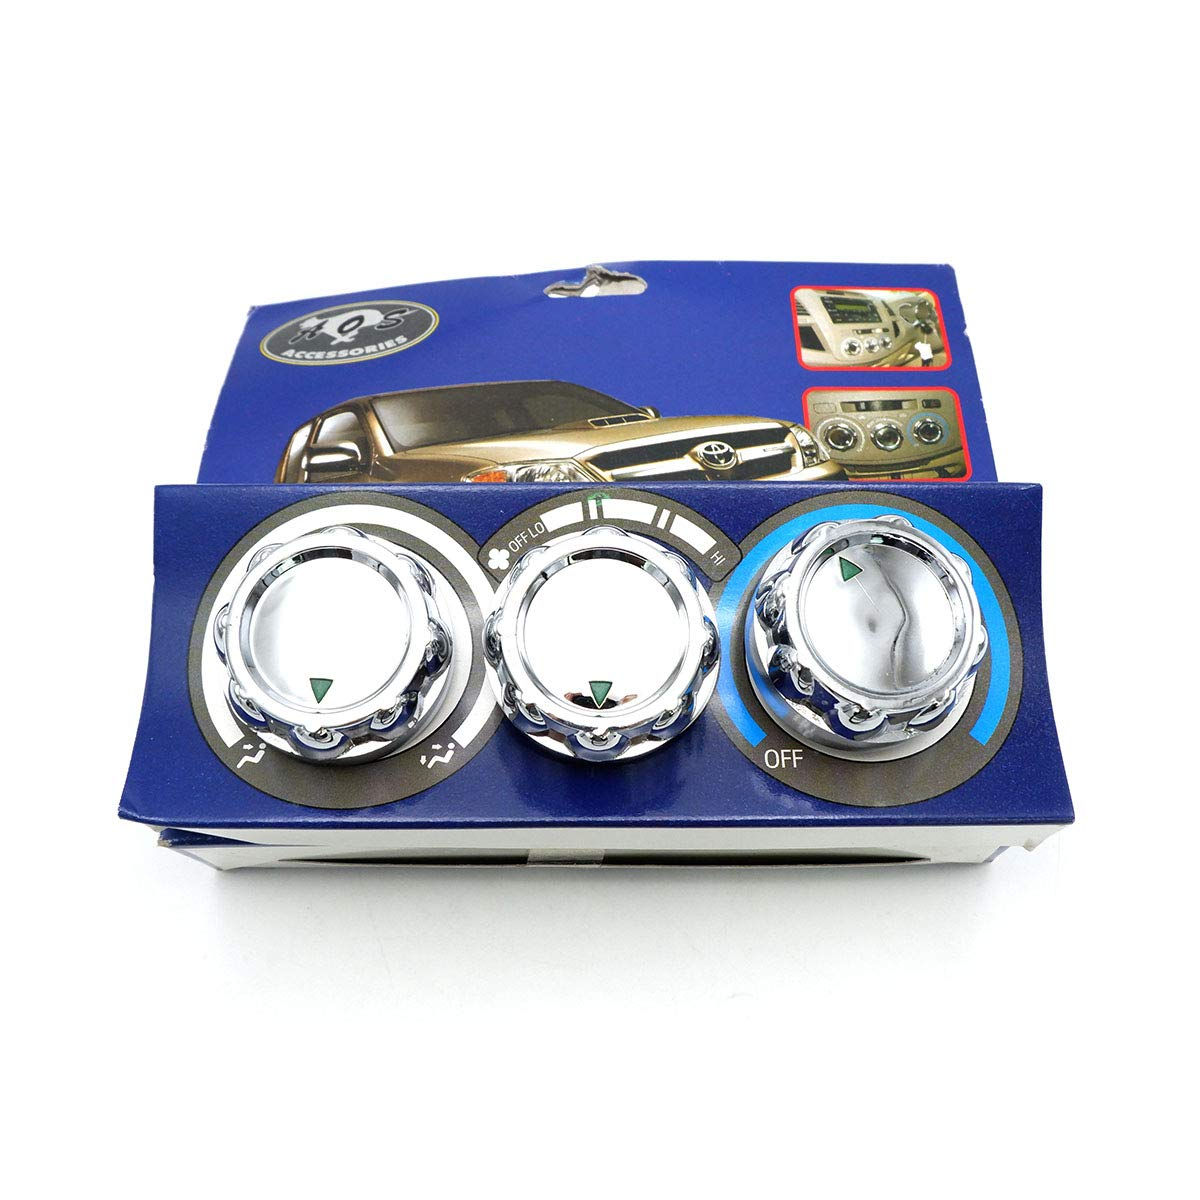 Nonstops Chrome Air Condition Switch Cover Chrome Fits Toyota Hilux Vigo Mk6 2005 10 by Nonstops